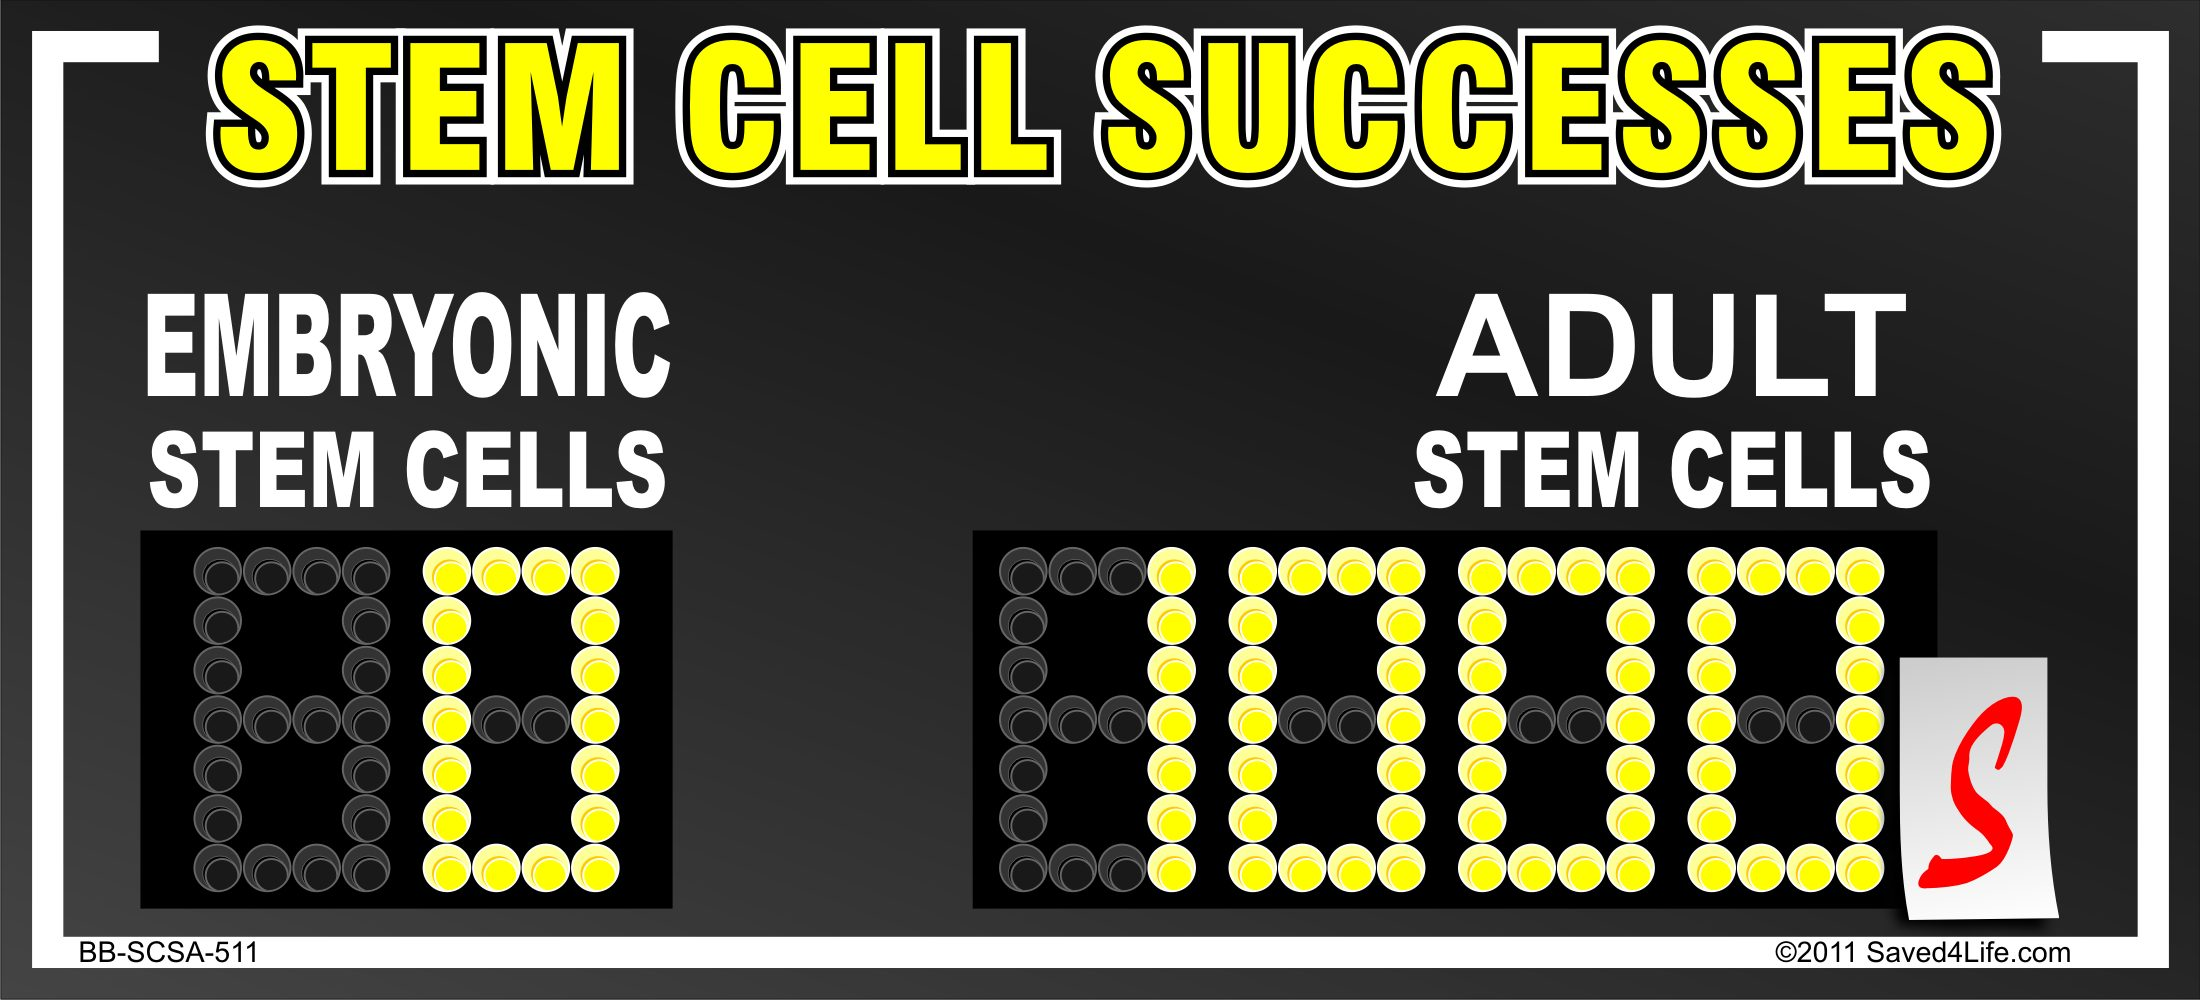 Stem Cell Successes - SCOREBOARD